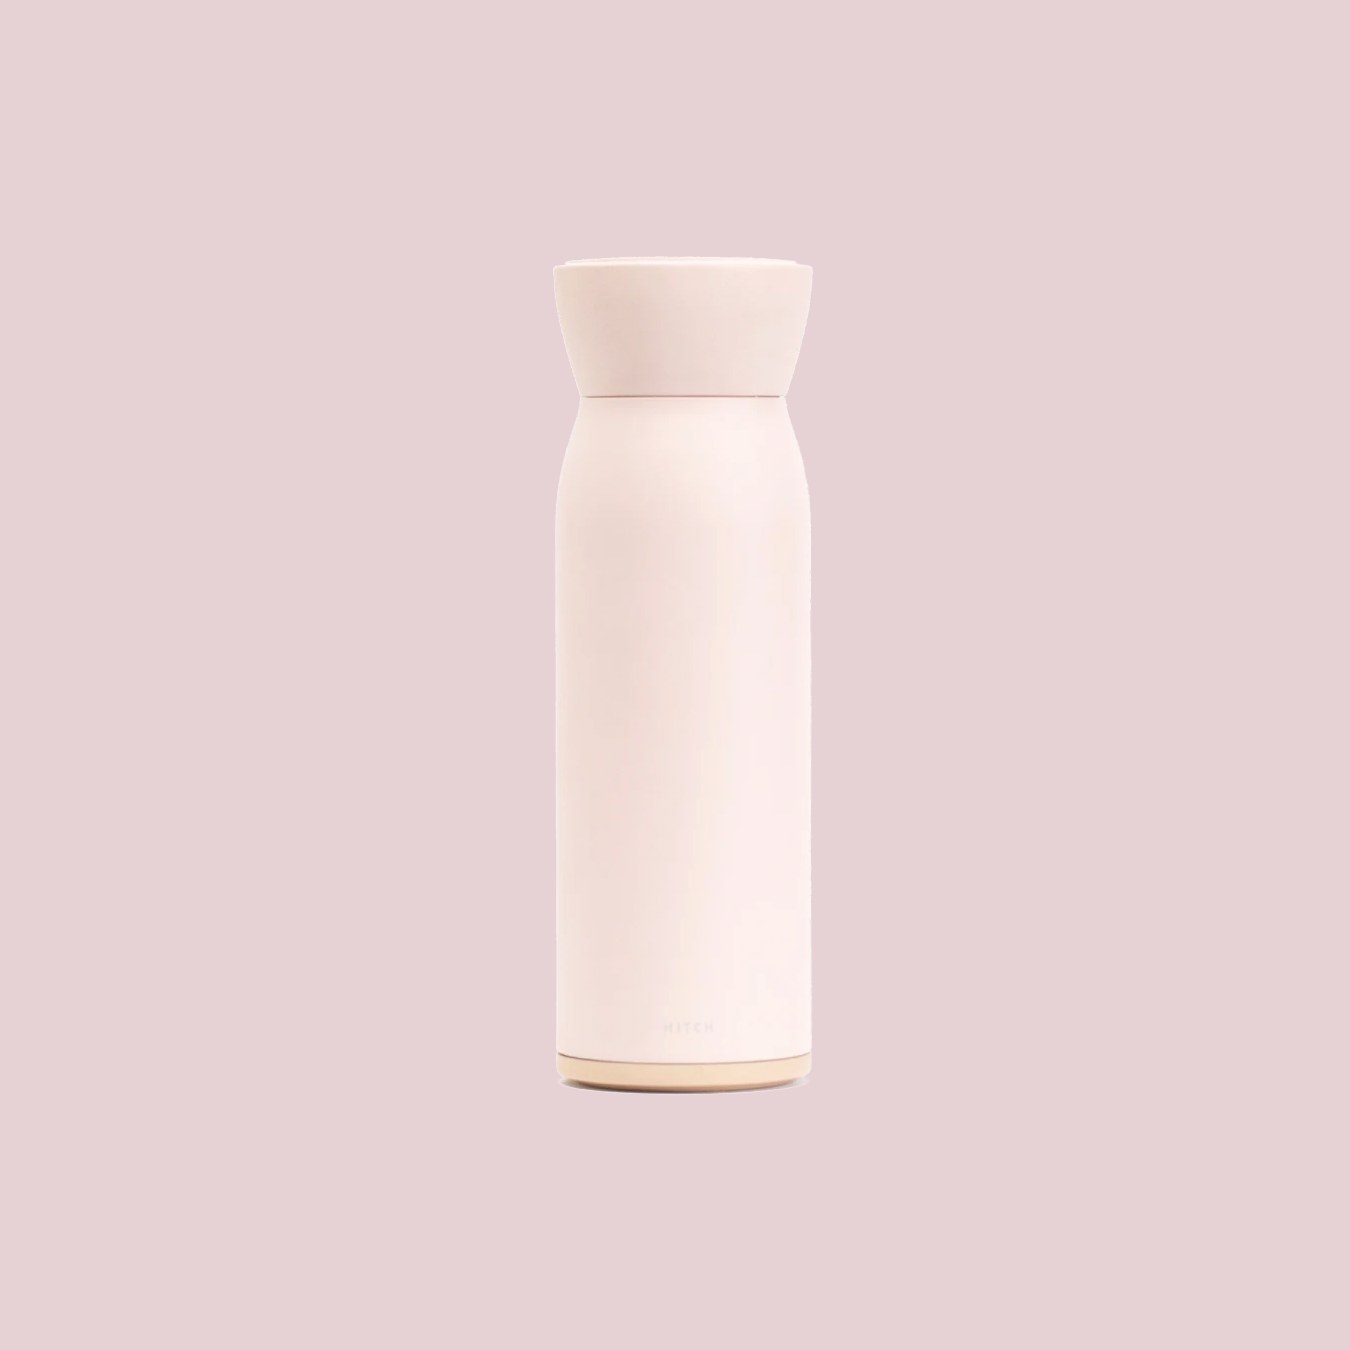 Bottle and Cup in Pale Blush